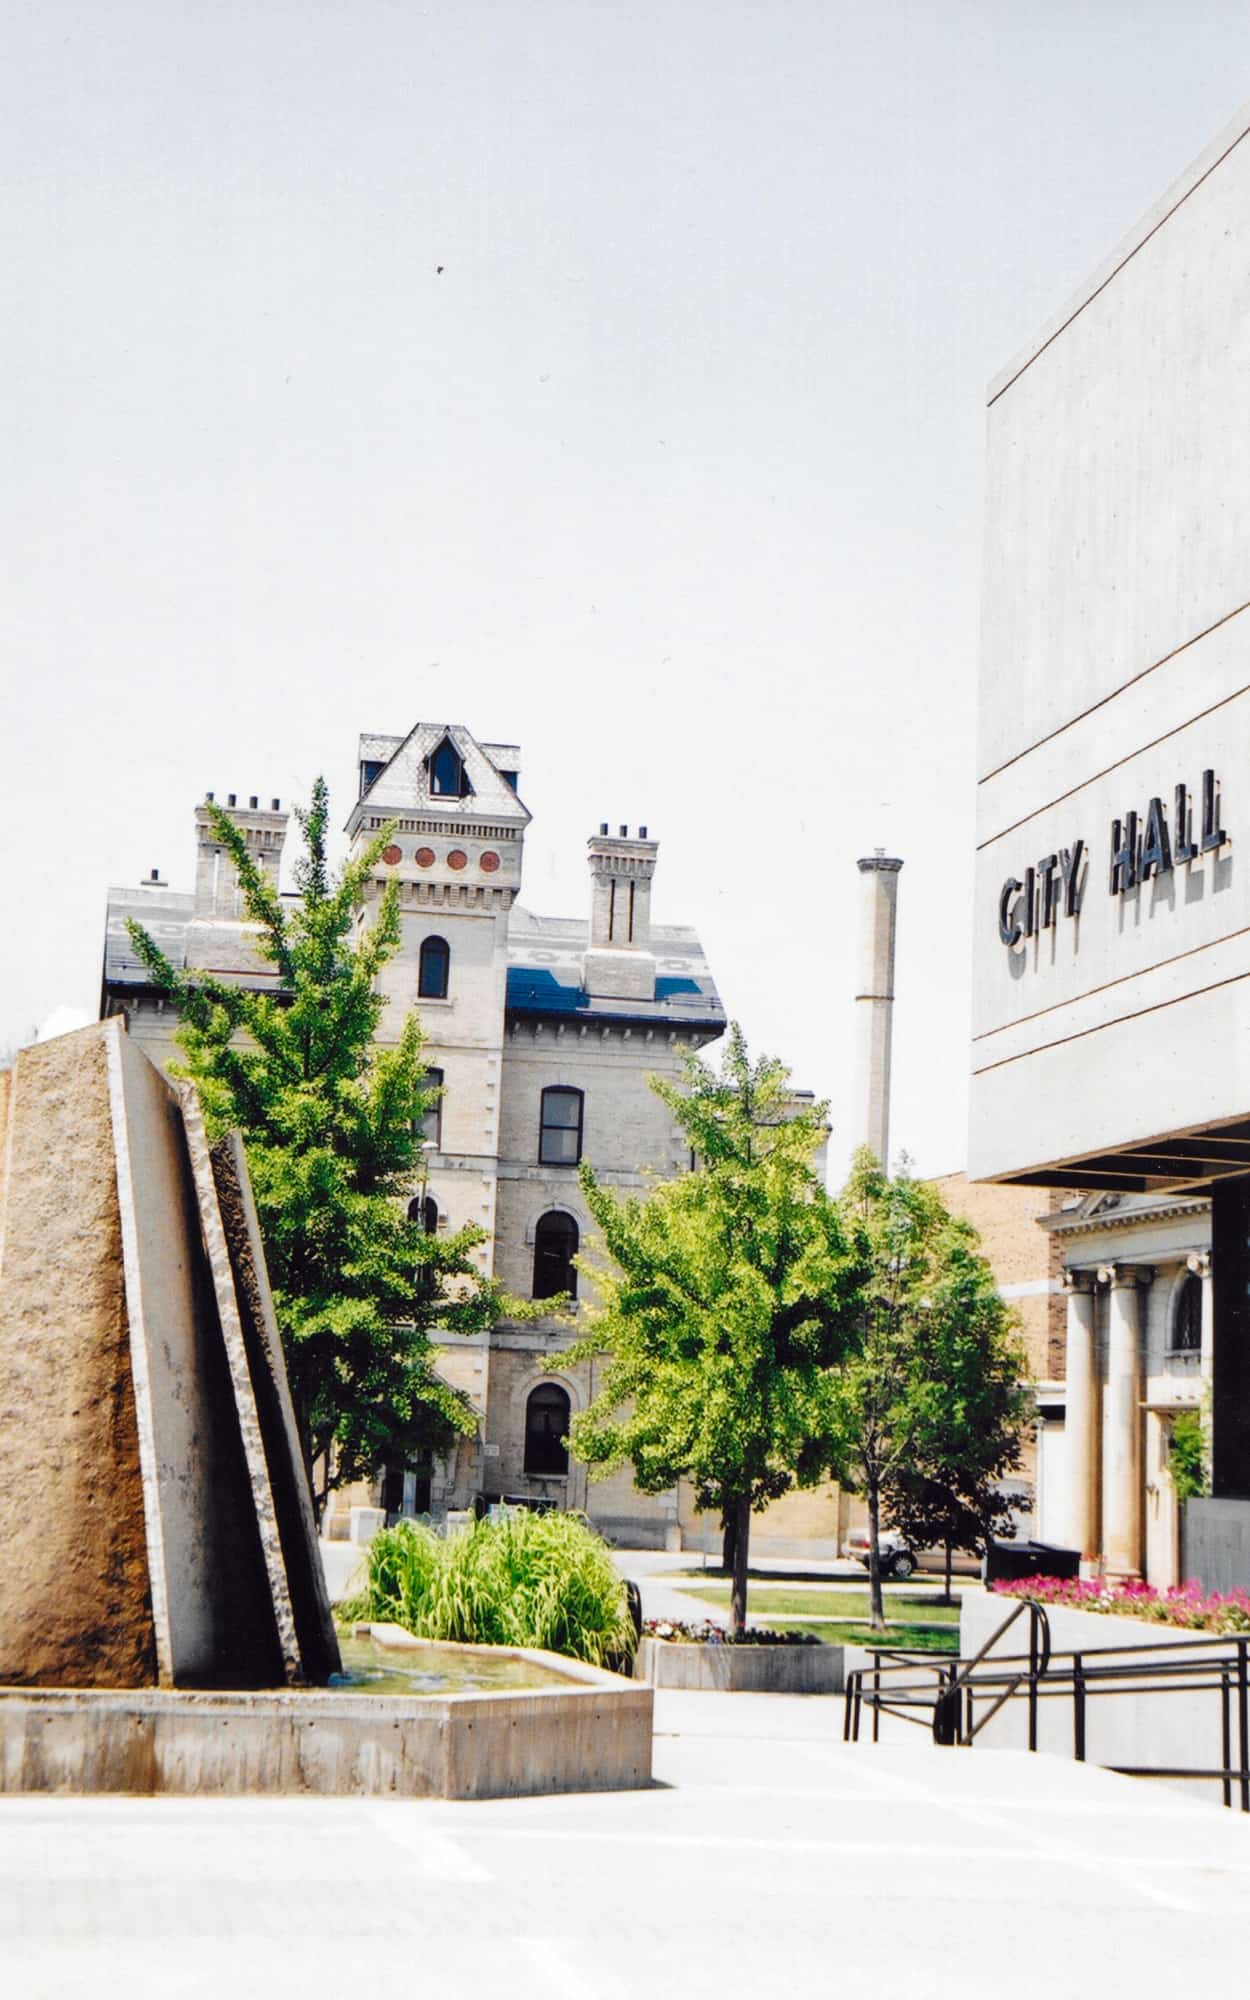 Detail of the fountain located in the middle of the square wit the Brantford County Courthouse in the background